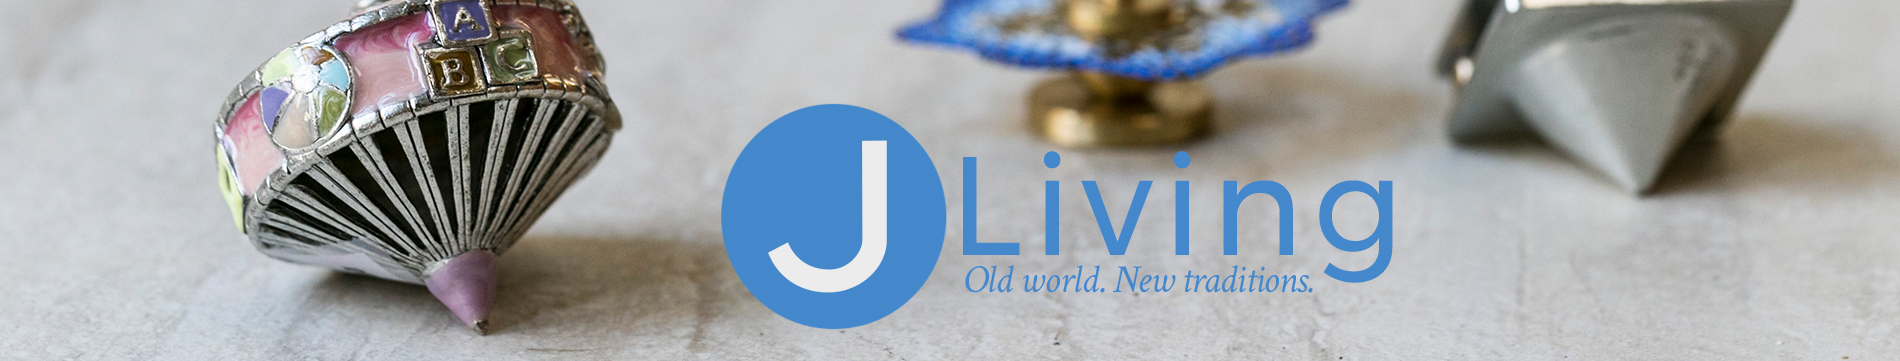 Welcome to JLiving!